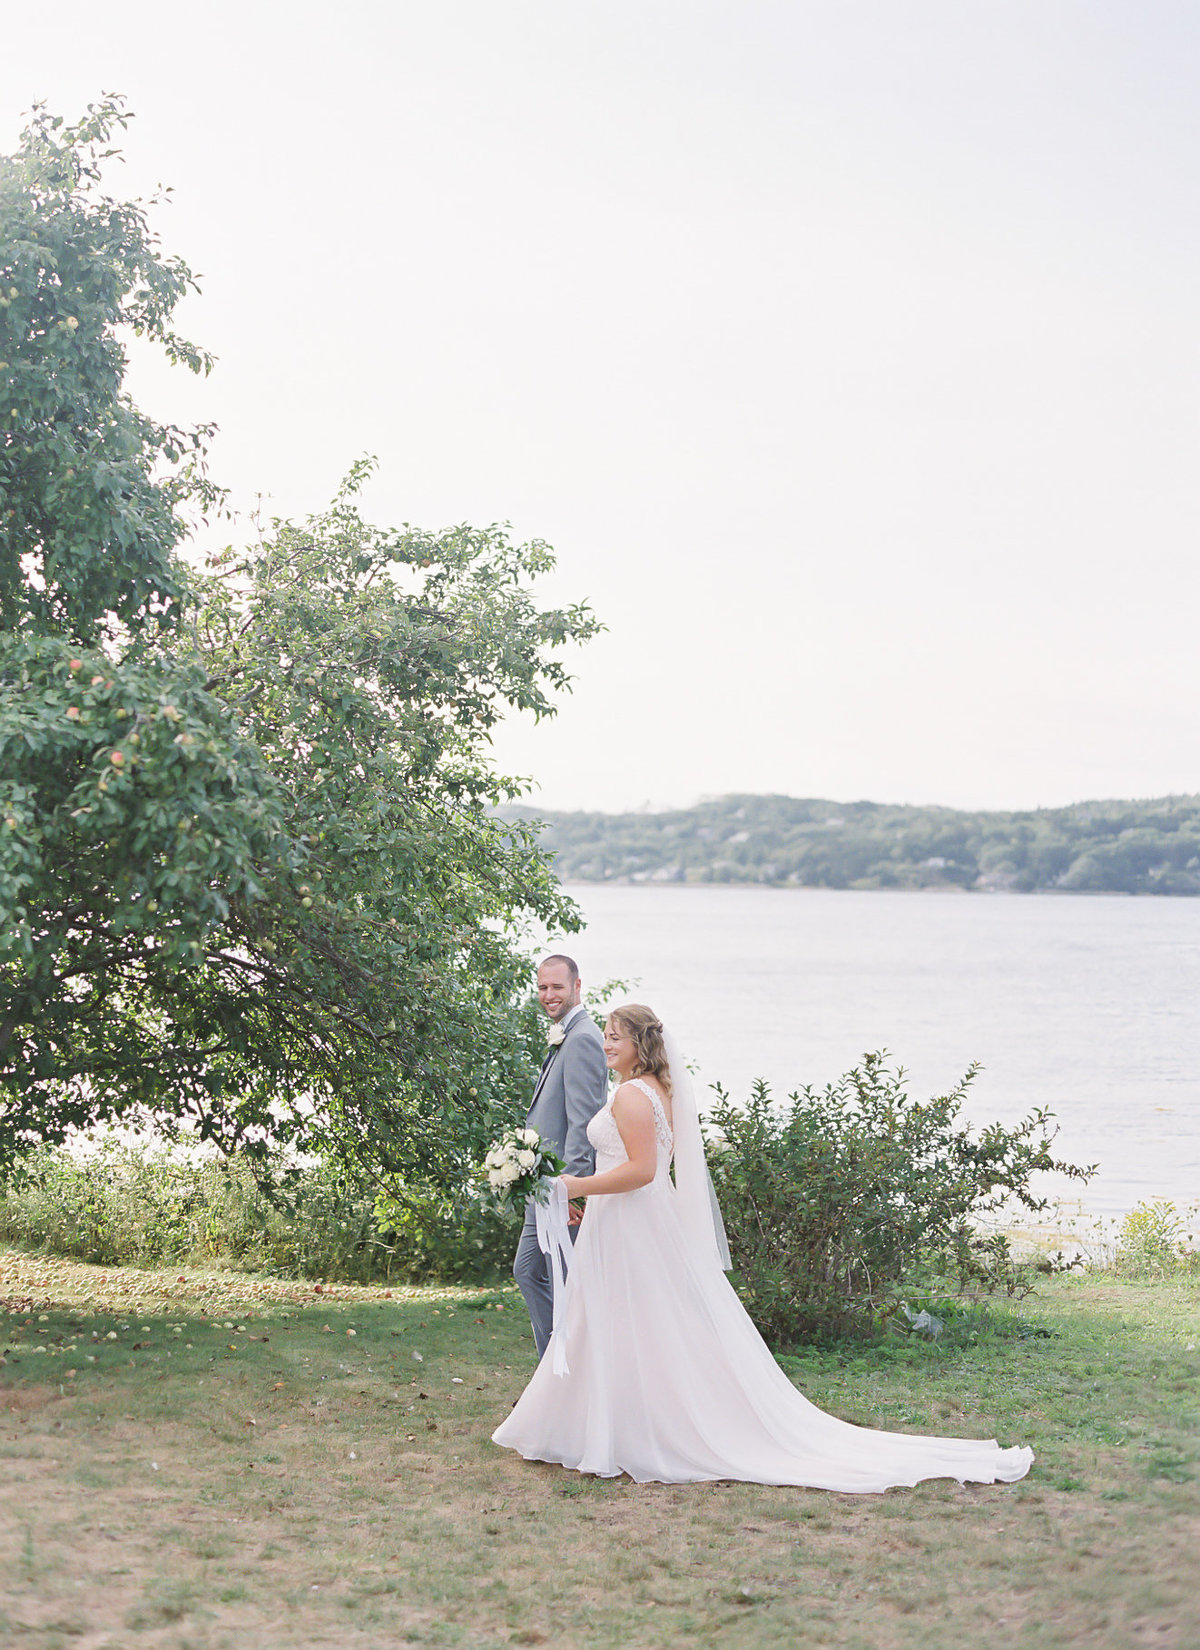 Jacqueline Anne Photography  - A+A Wedding Sneak Previews - Nova Scotia Wedding-9